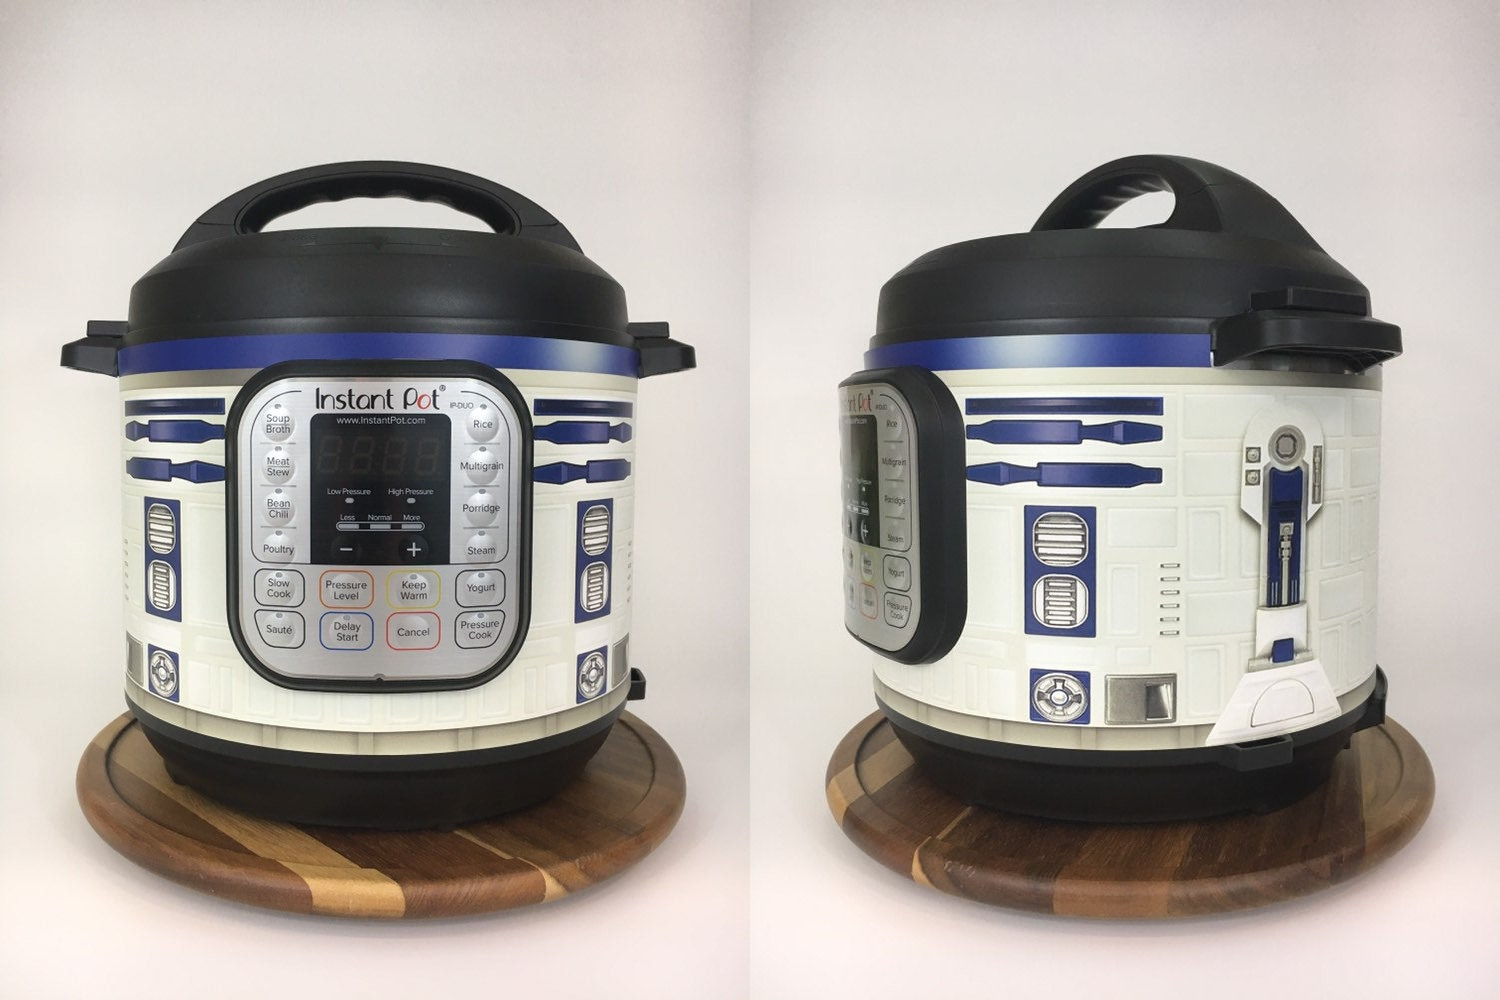 Clever Wraps That Turn Instant Pots Into R2 D2 Or Bb 8